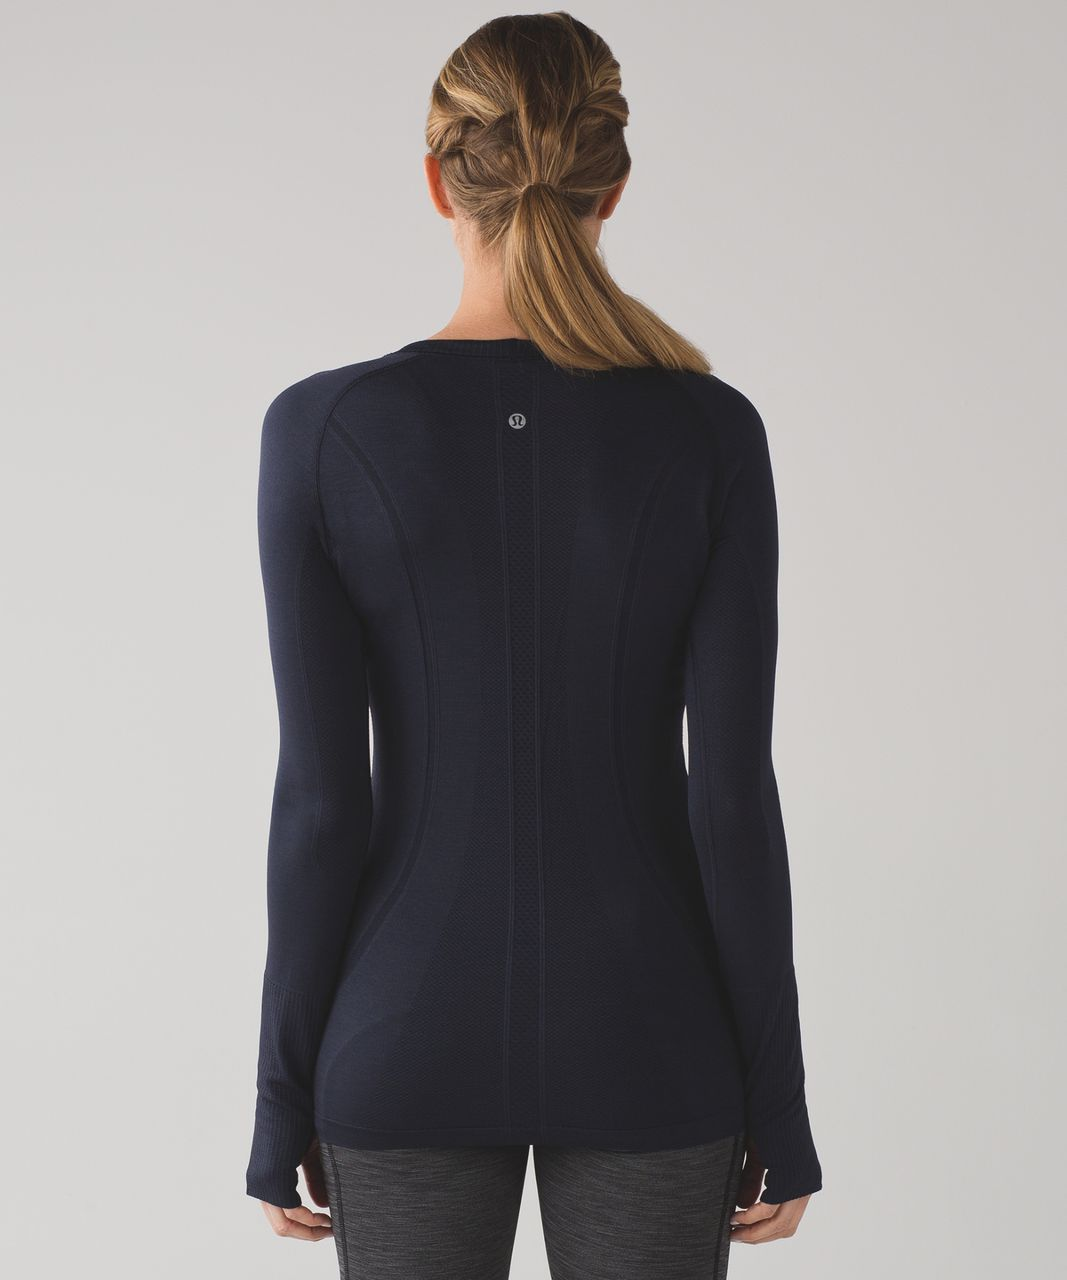 Lululemon Swiftly Tech Long Sleeve Crew - Midnight Navy / Midnight Navy